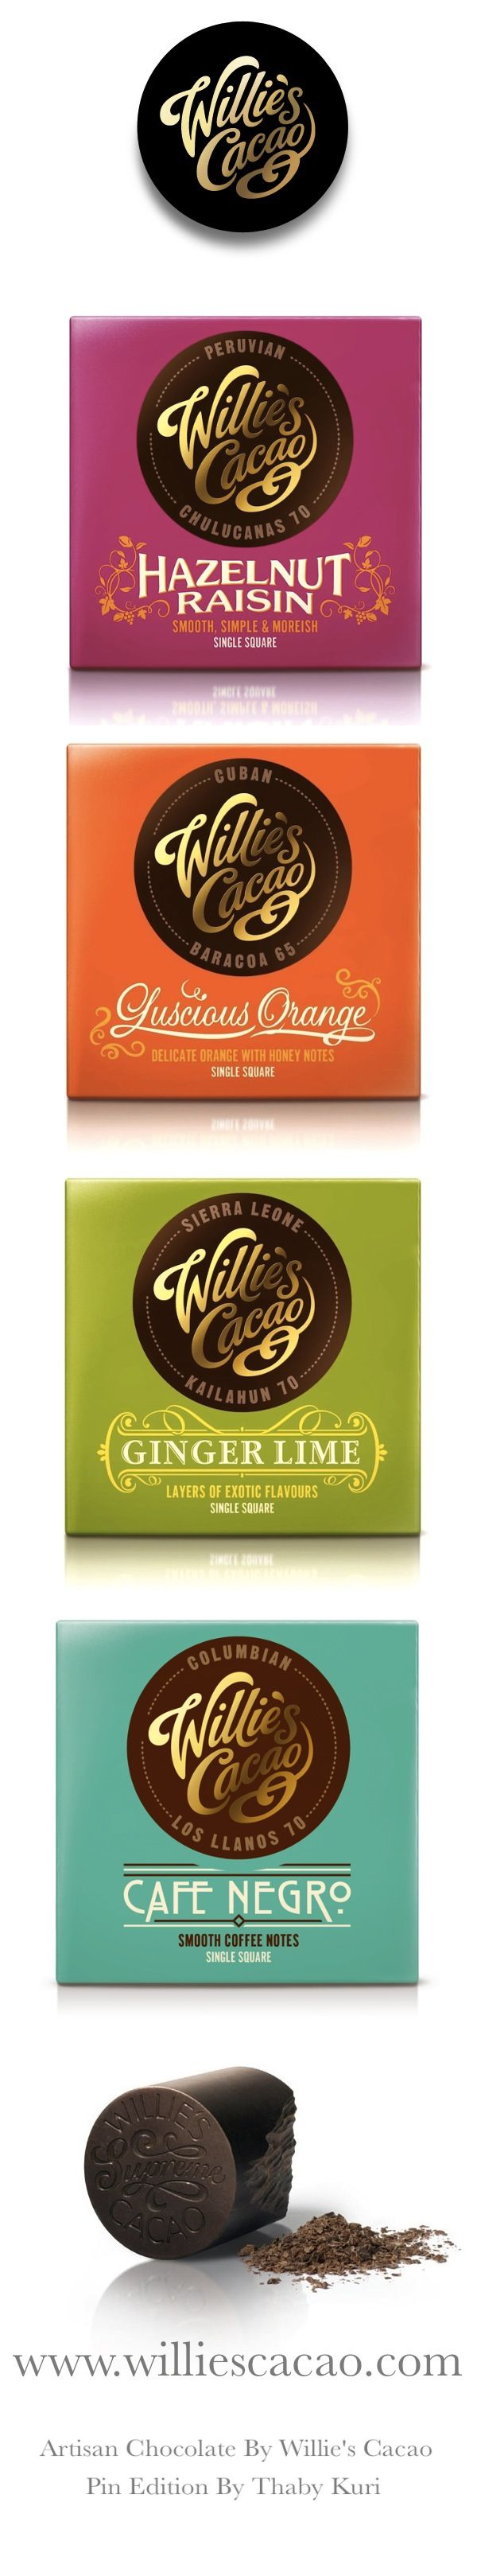 Artisan Chocolate Squares / Wllie's Cacao #chocolate #packaging